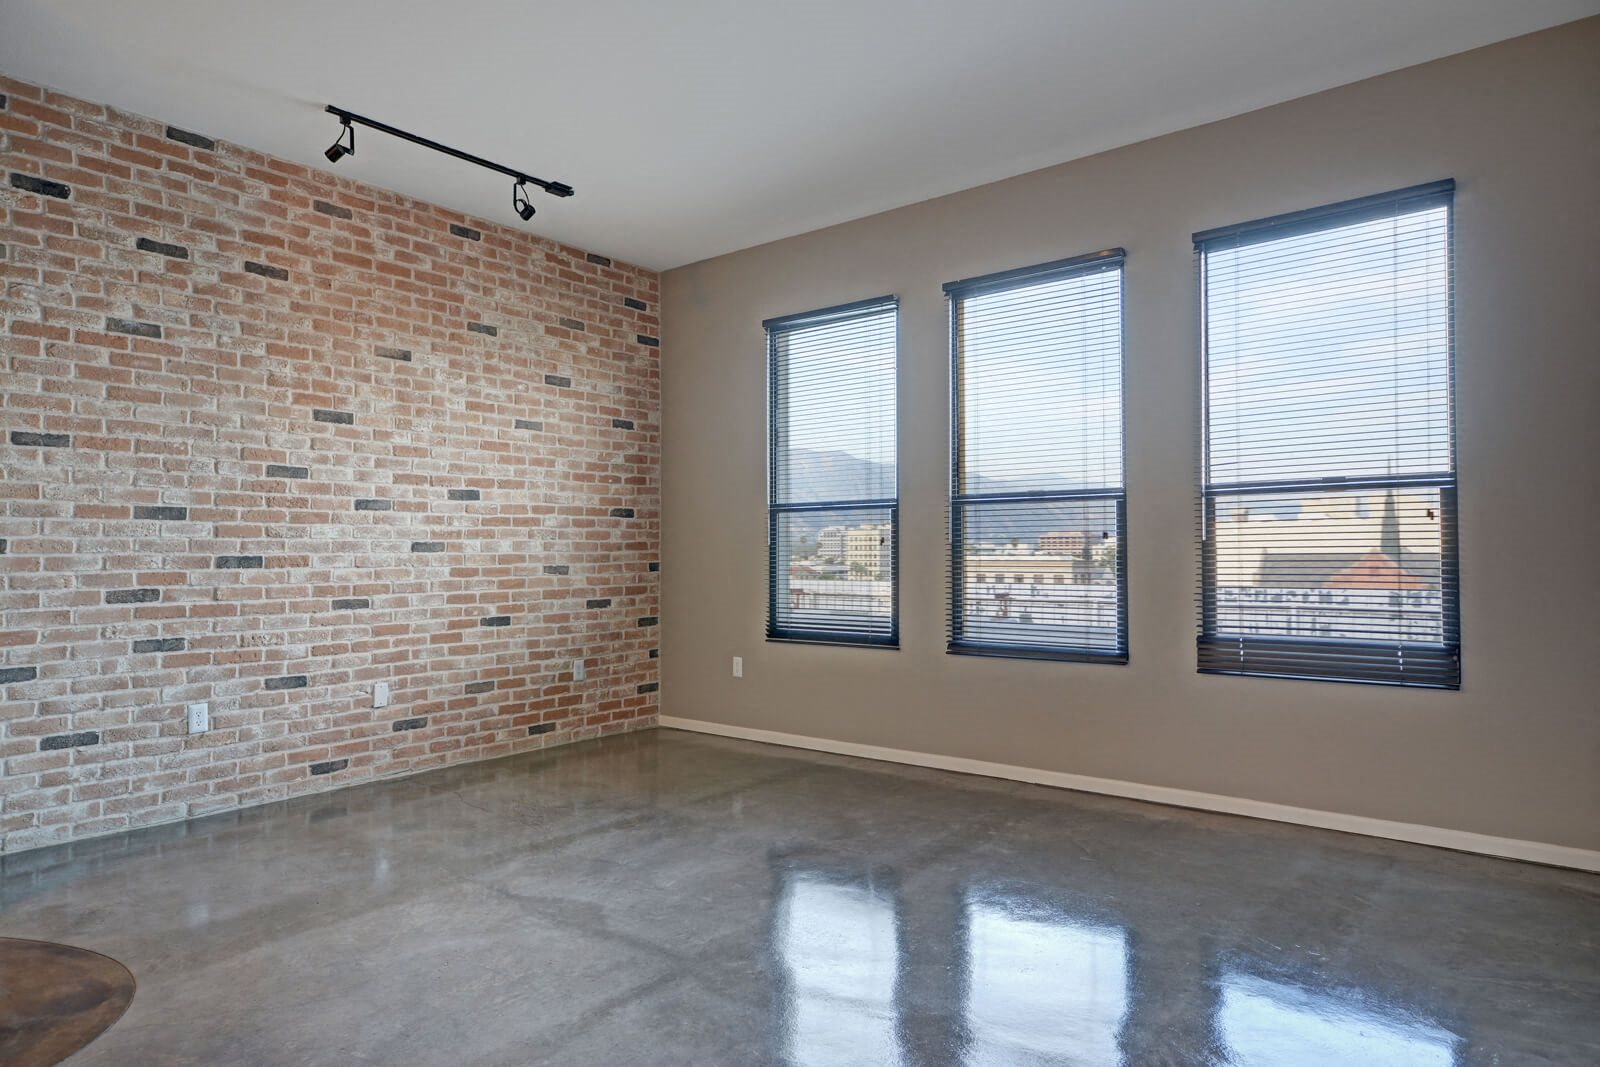 Large Windows Look Out on Great View at Terraces at Paseo Colorado, 375 E. Green Street, CA